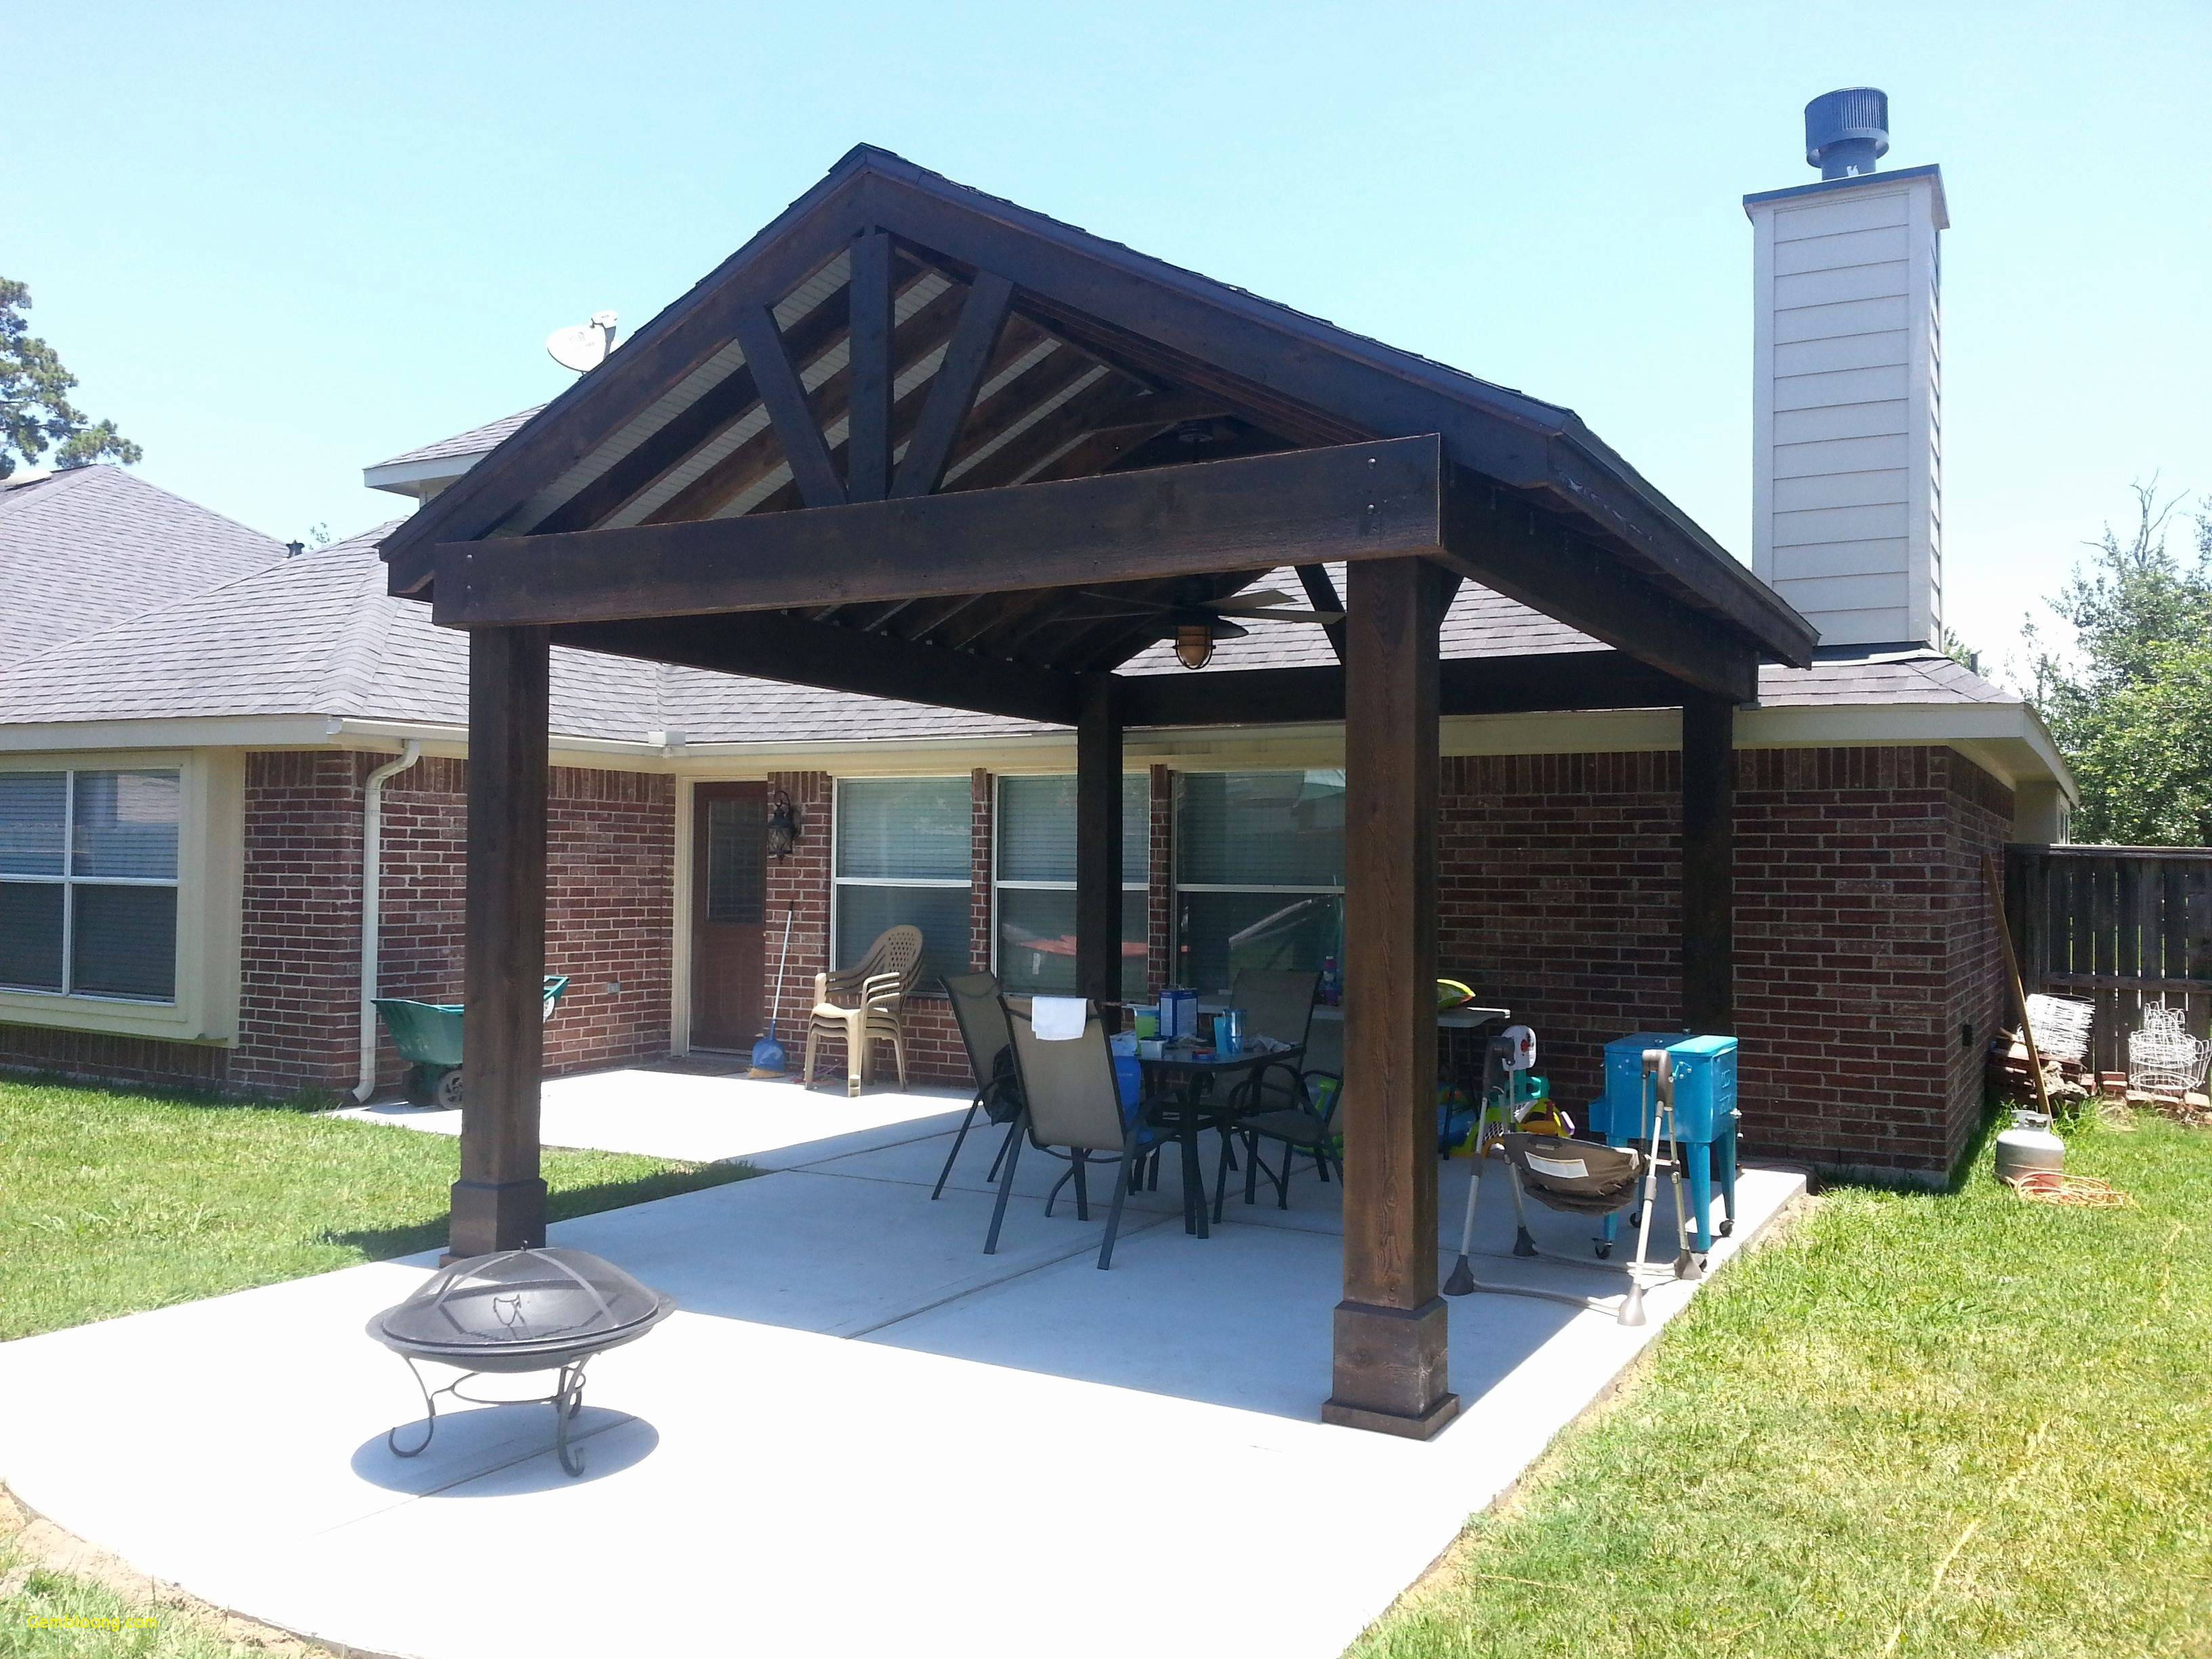 gazebo 4x5 il meglio del 15 plus outdoor gazebo cover furnitureinredsea di gazebo 4x5